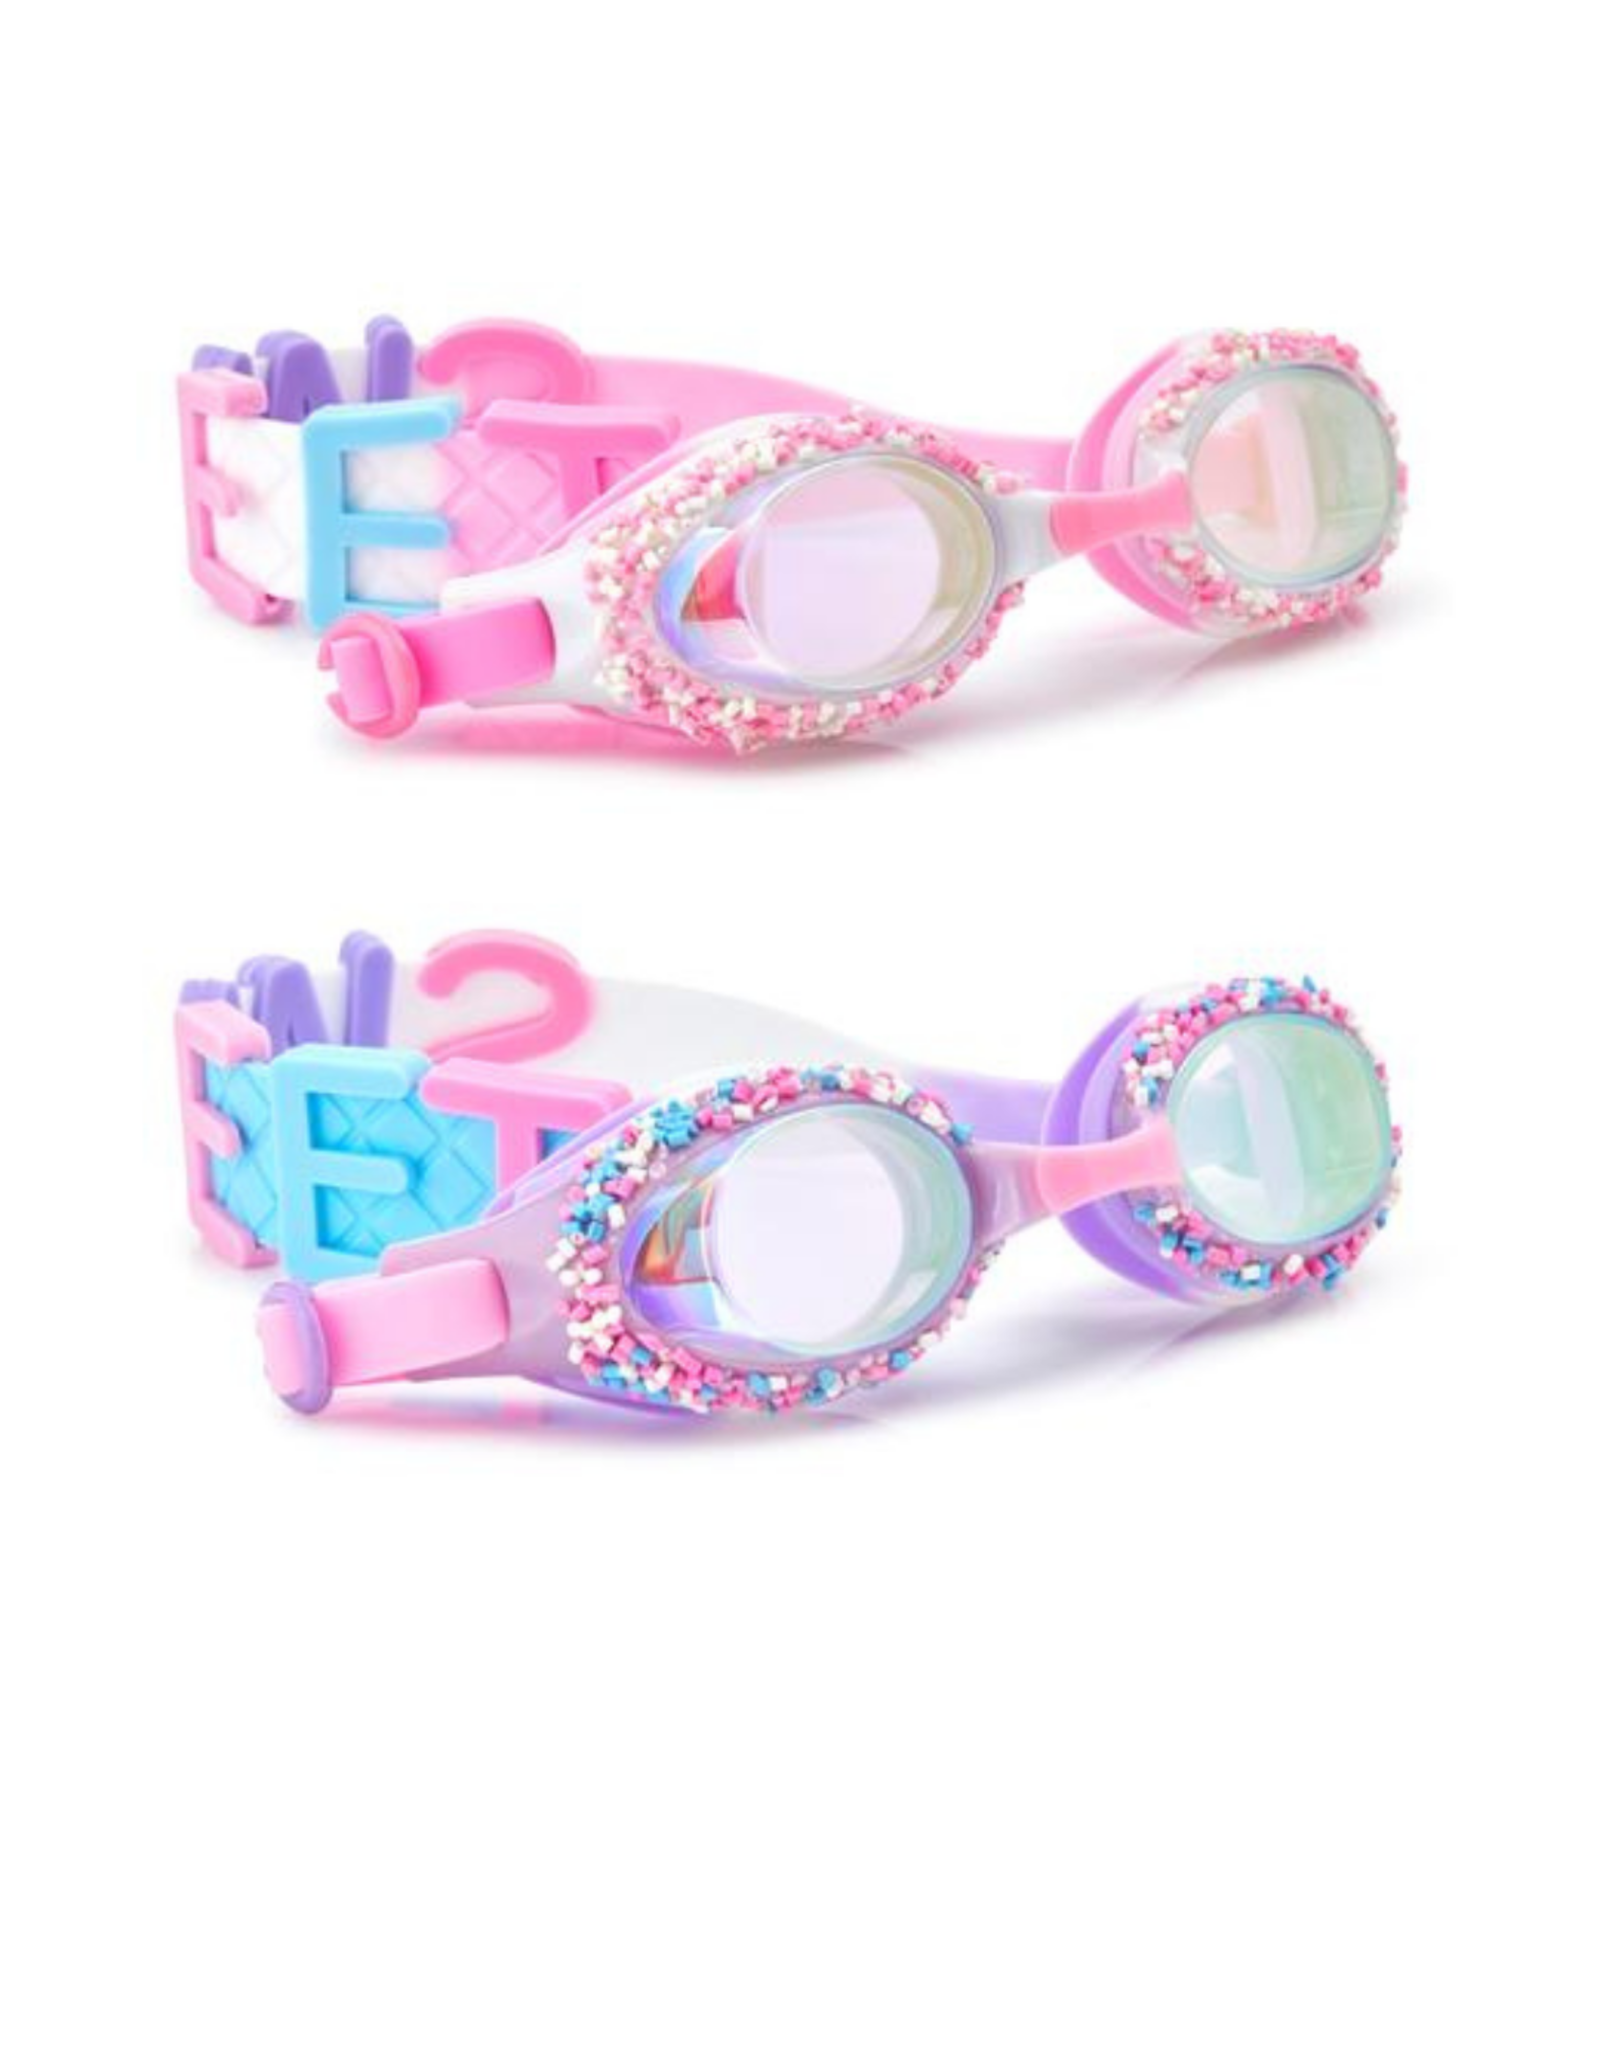 Bling2O Funfetti Bling Goggles